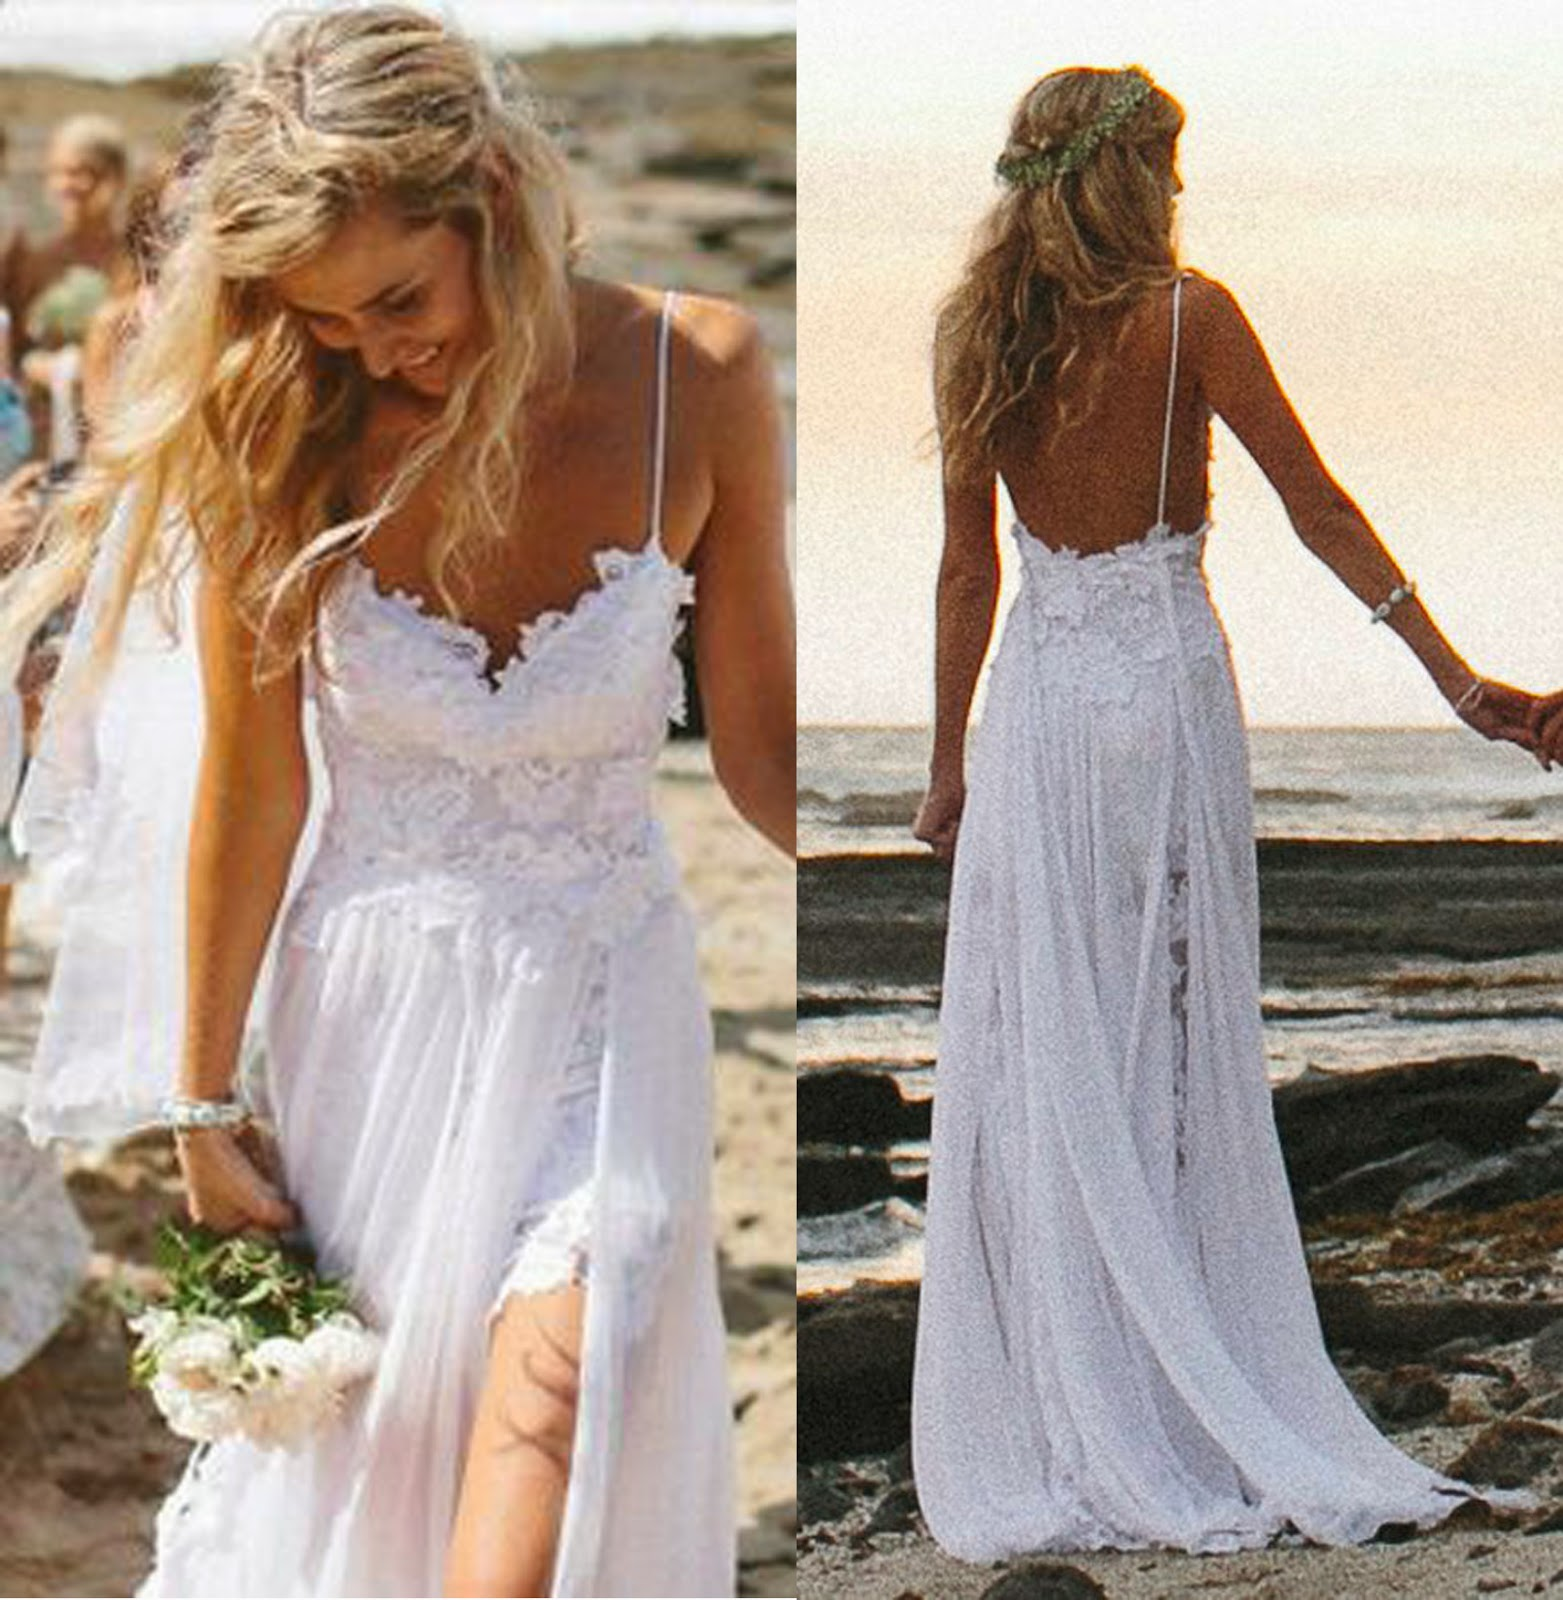 Natasha Wedding Essentials: Summer Beach Wedding Ideas